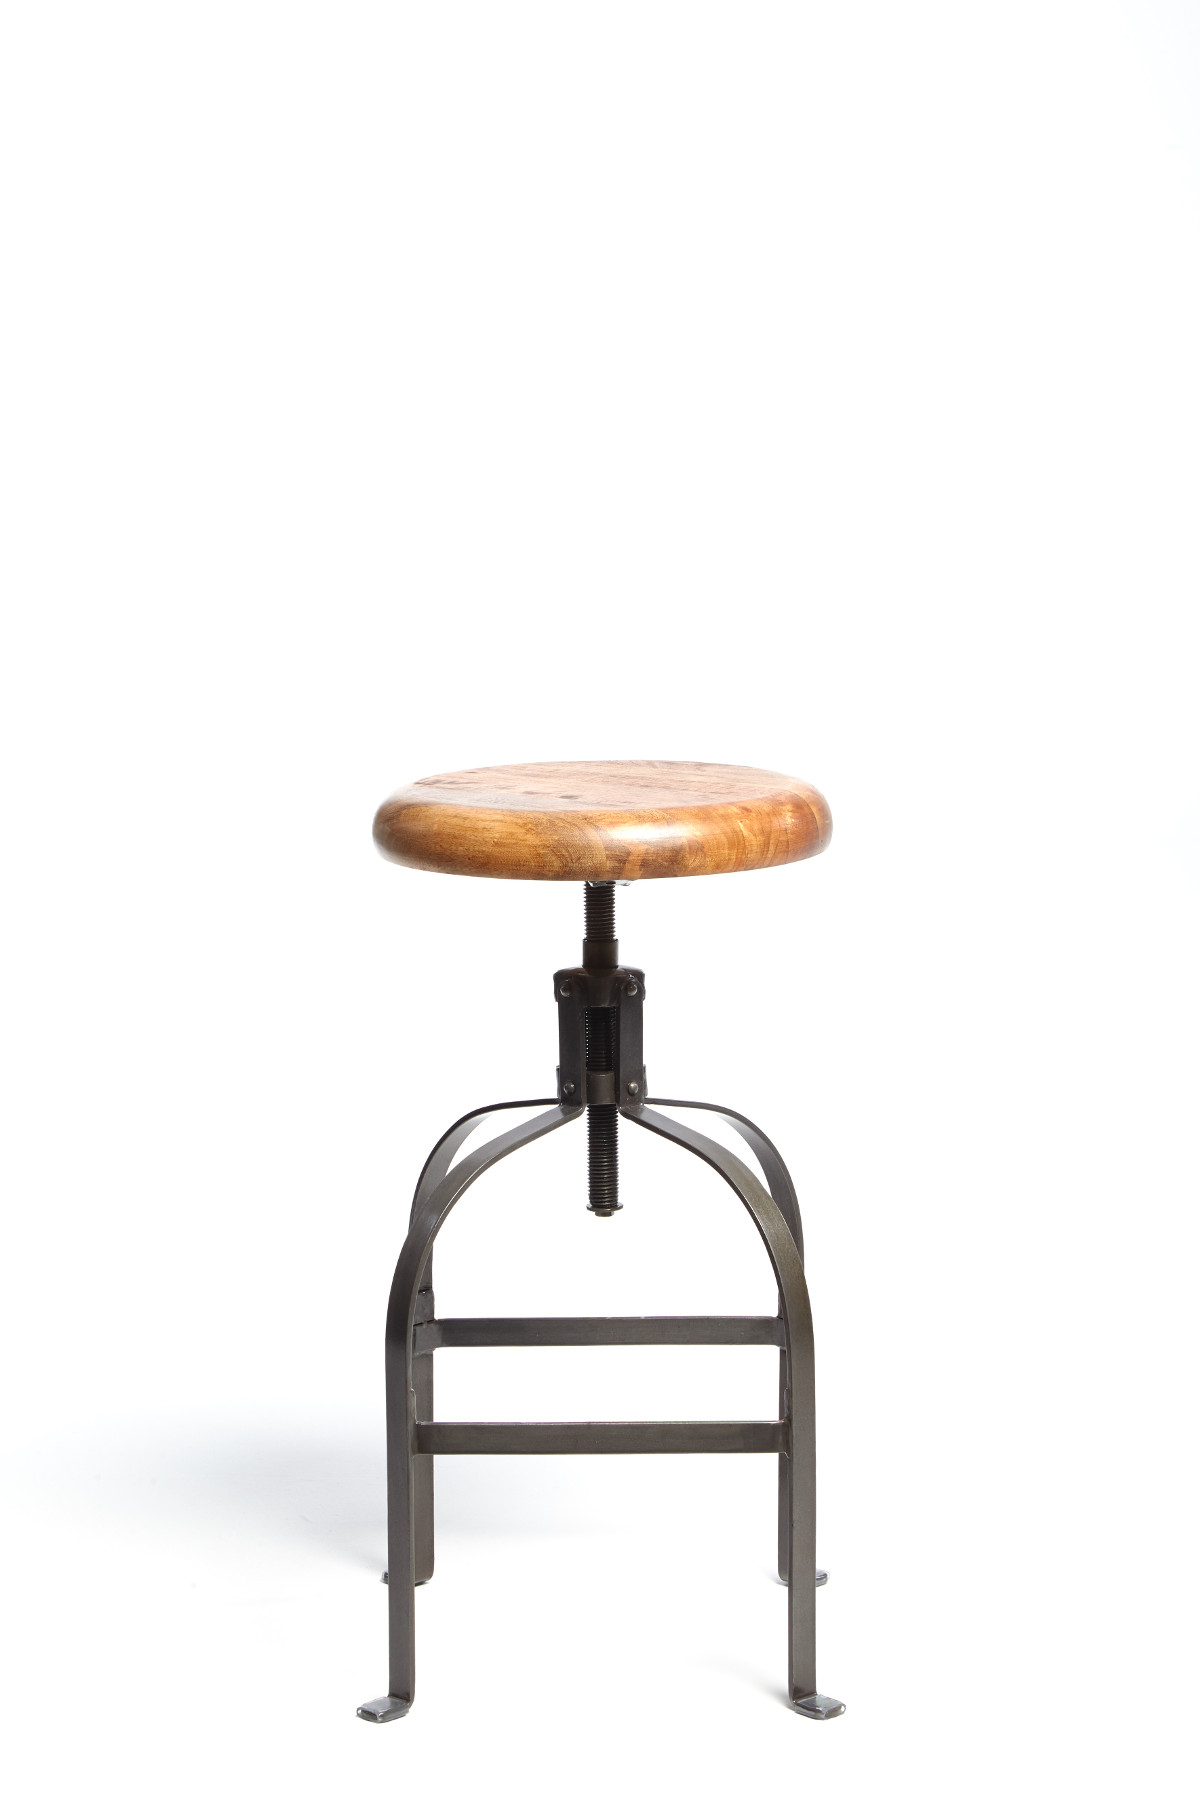 Reclaimed Dentist Stool